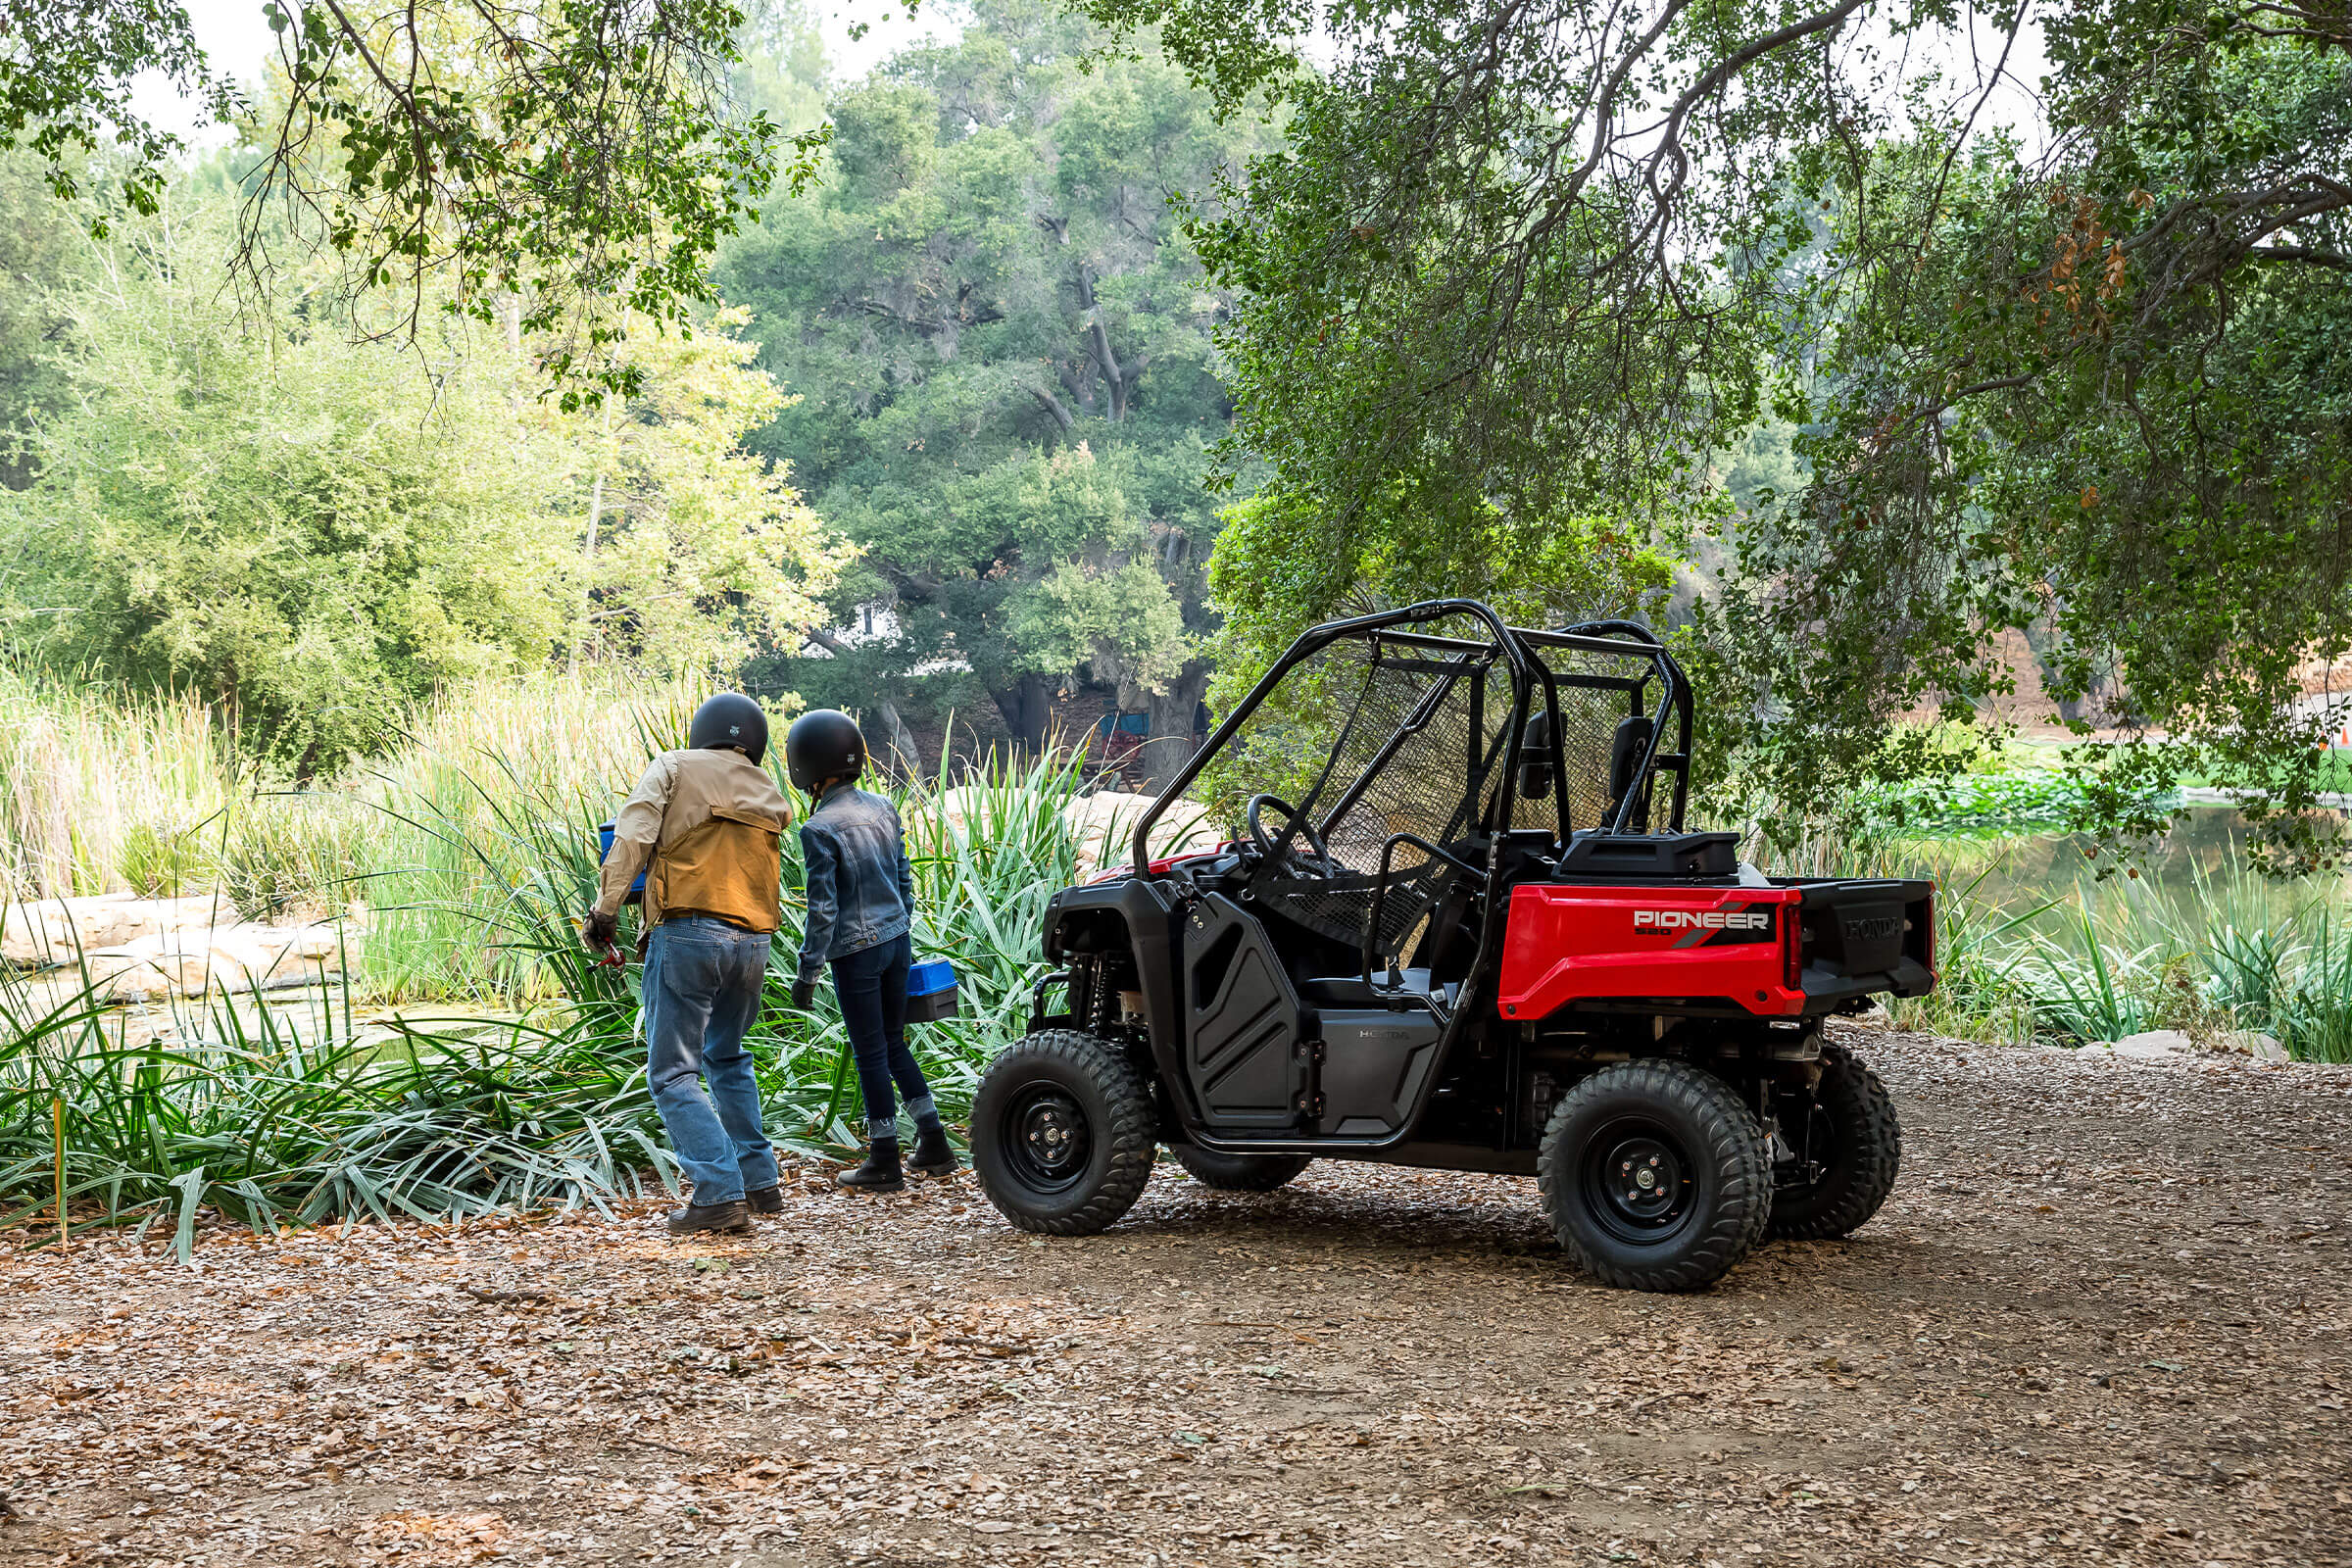 2021 Honda Pioneer 520 in Brunswick, Georgia - Photo 2